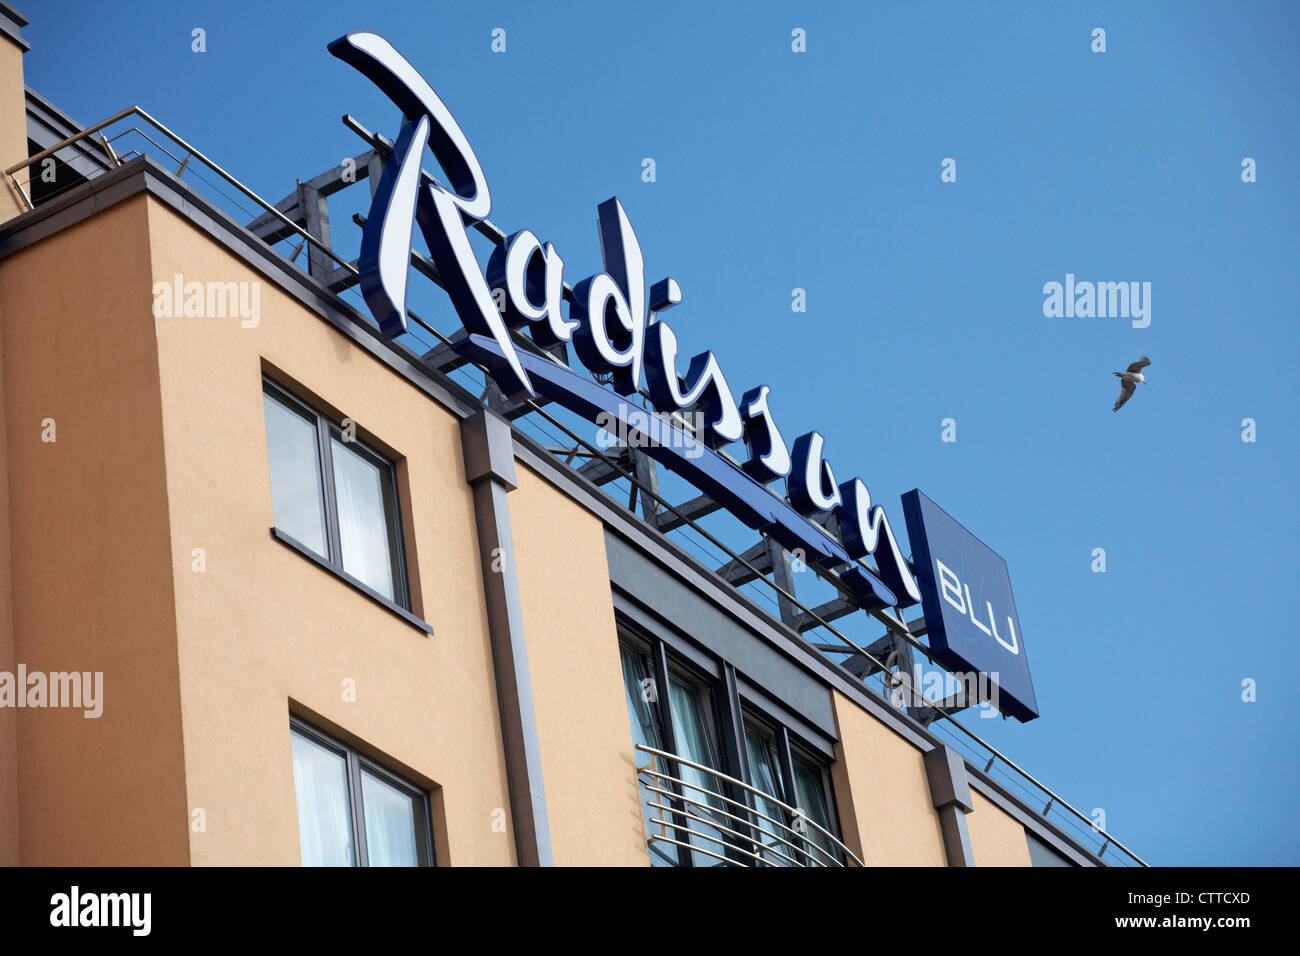 Radisson Blu hotel at St Helier, Jersey in July - Stock Image